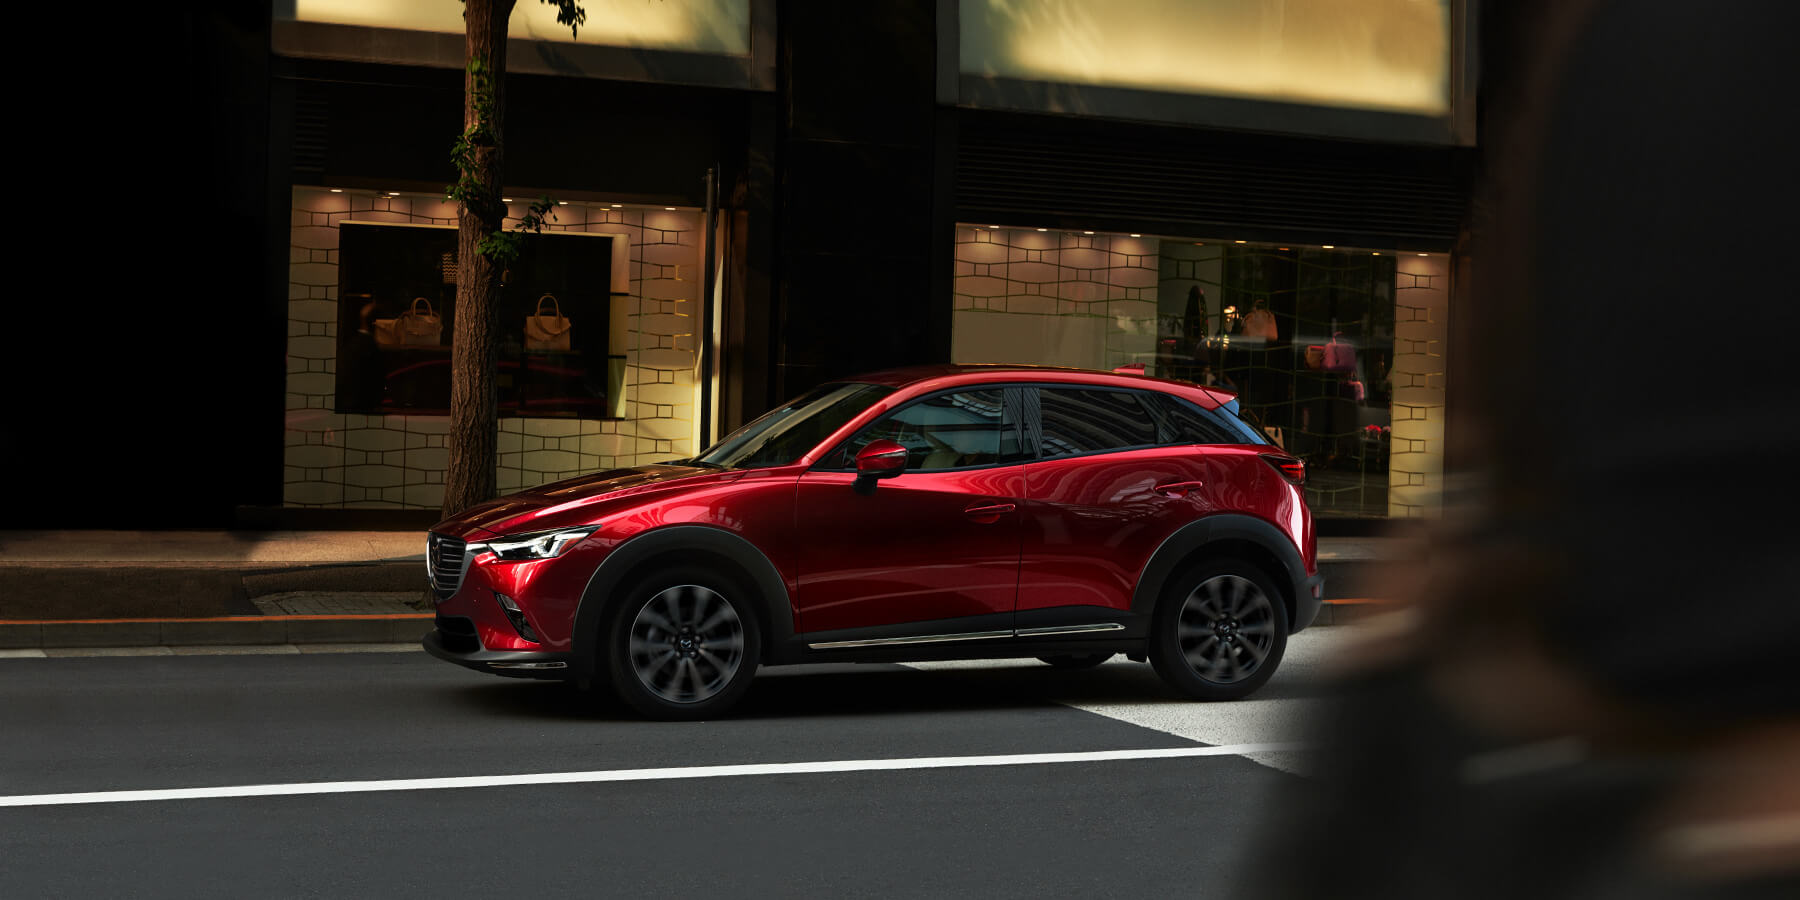 New Mazda CX-3 R 2.0L 2WD 6MT I-STOP